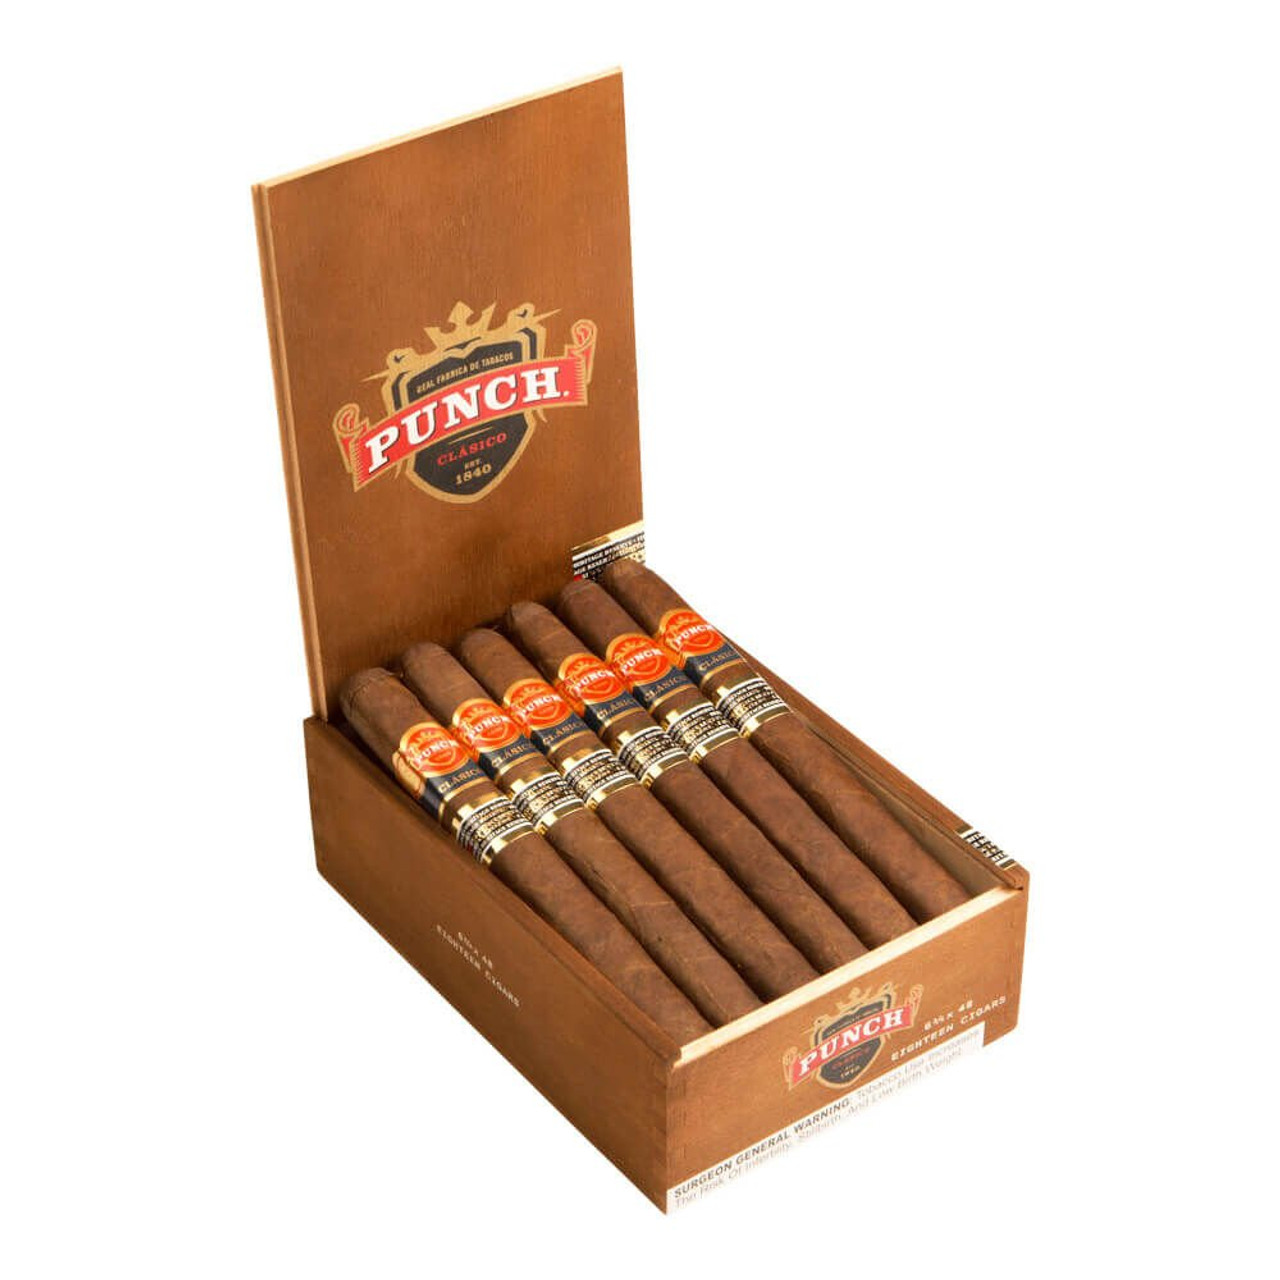 Punch Heritage Reserve Gigante Cigars - 6.0 x 60 (Box of 18)